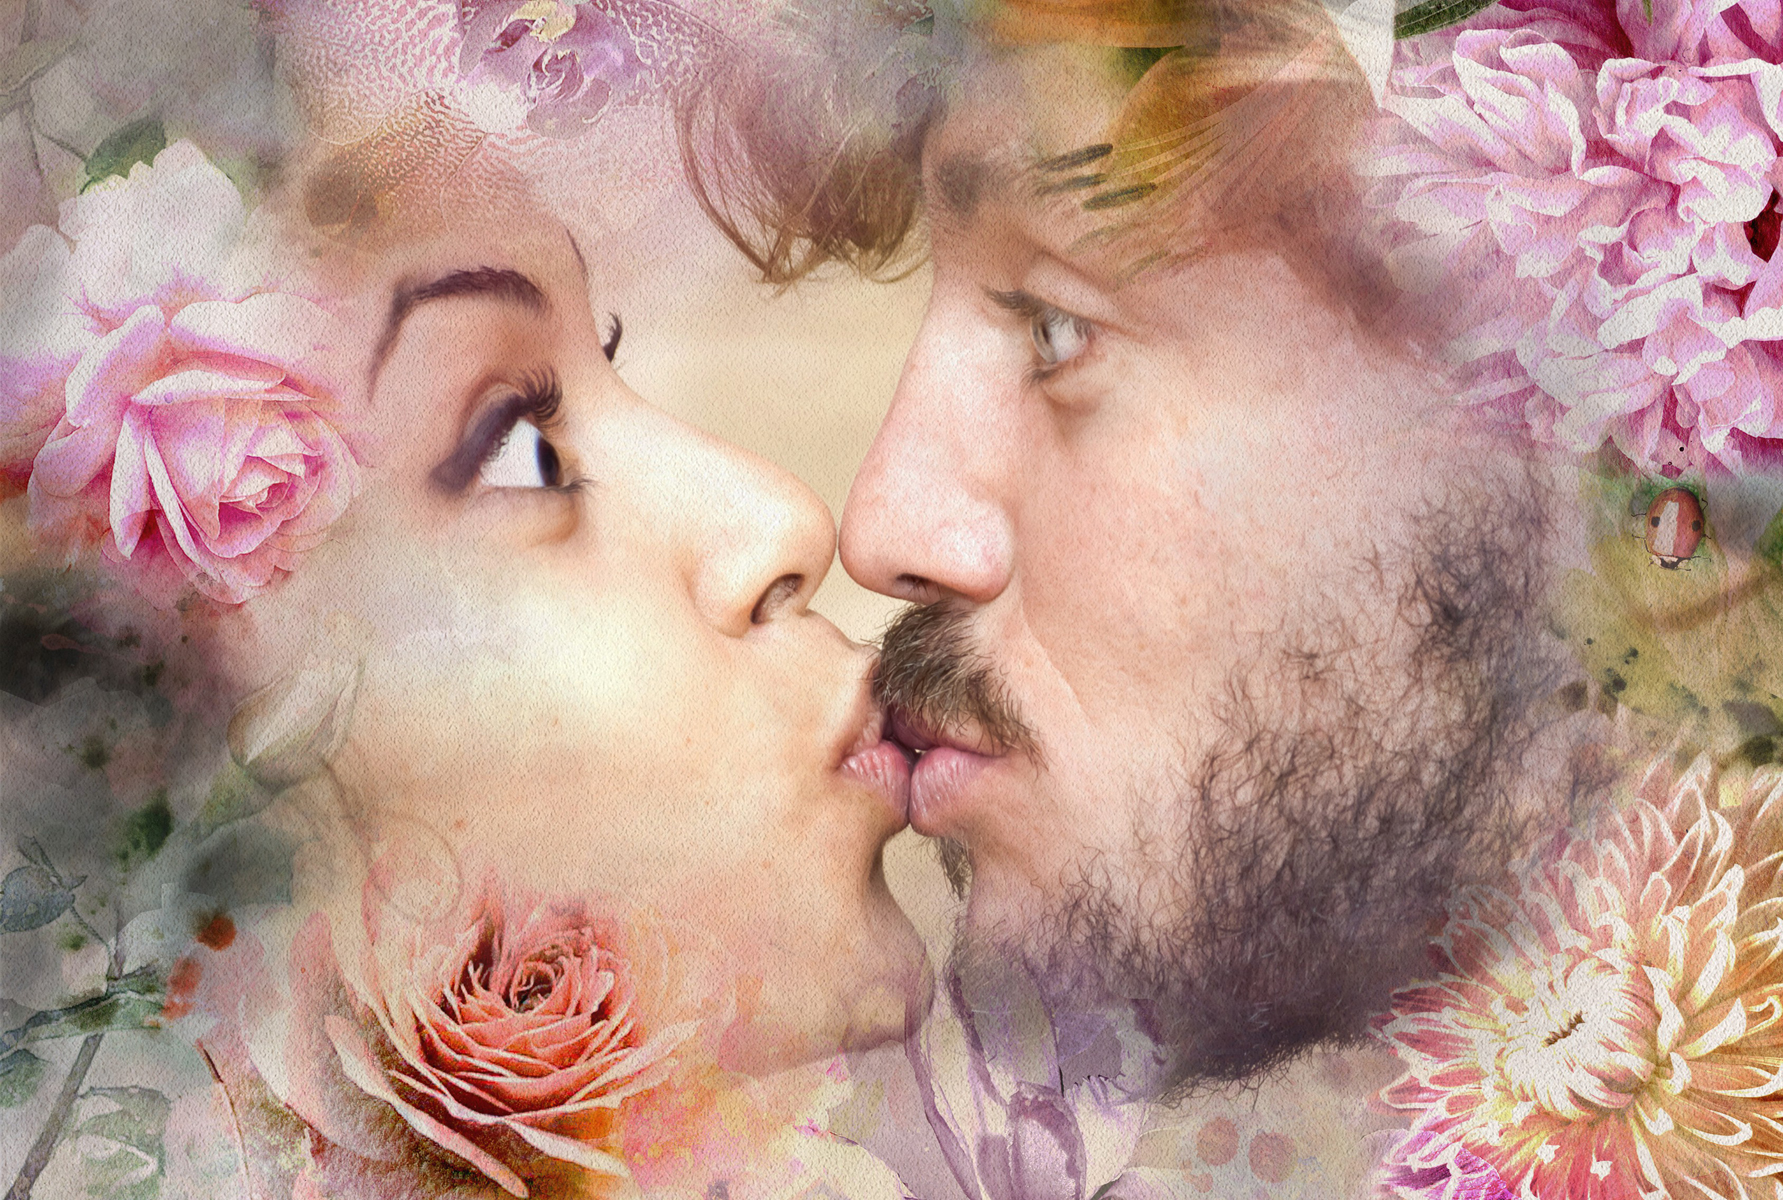 Flower picture background adds romanticism to this kissing couple photo